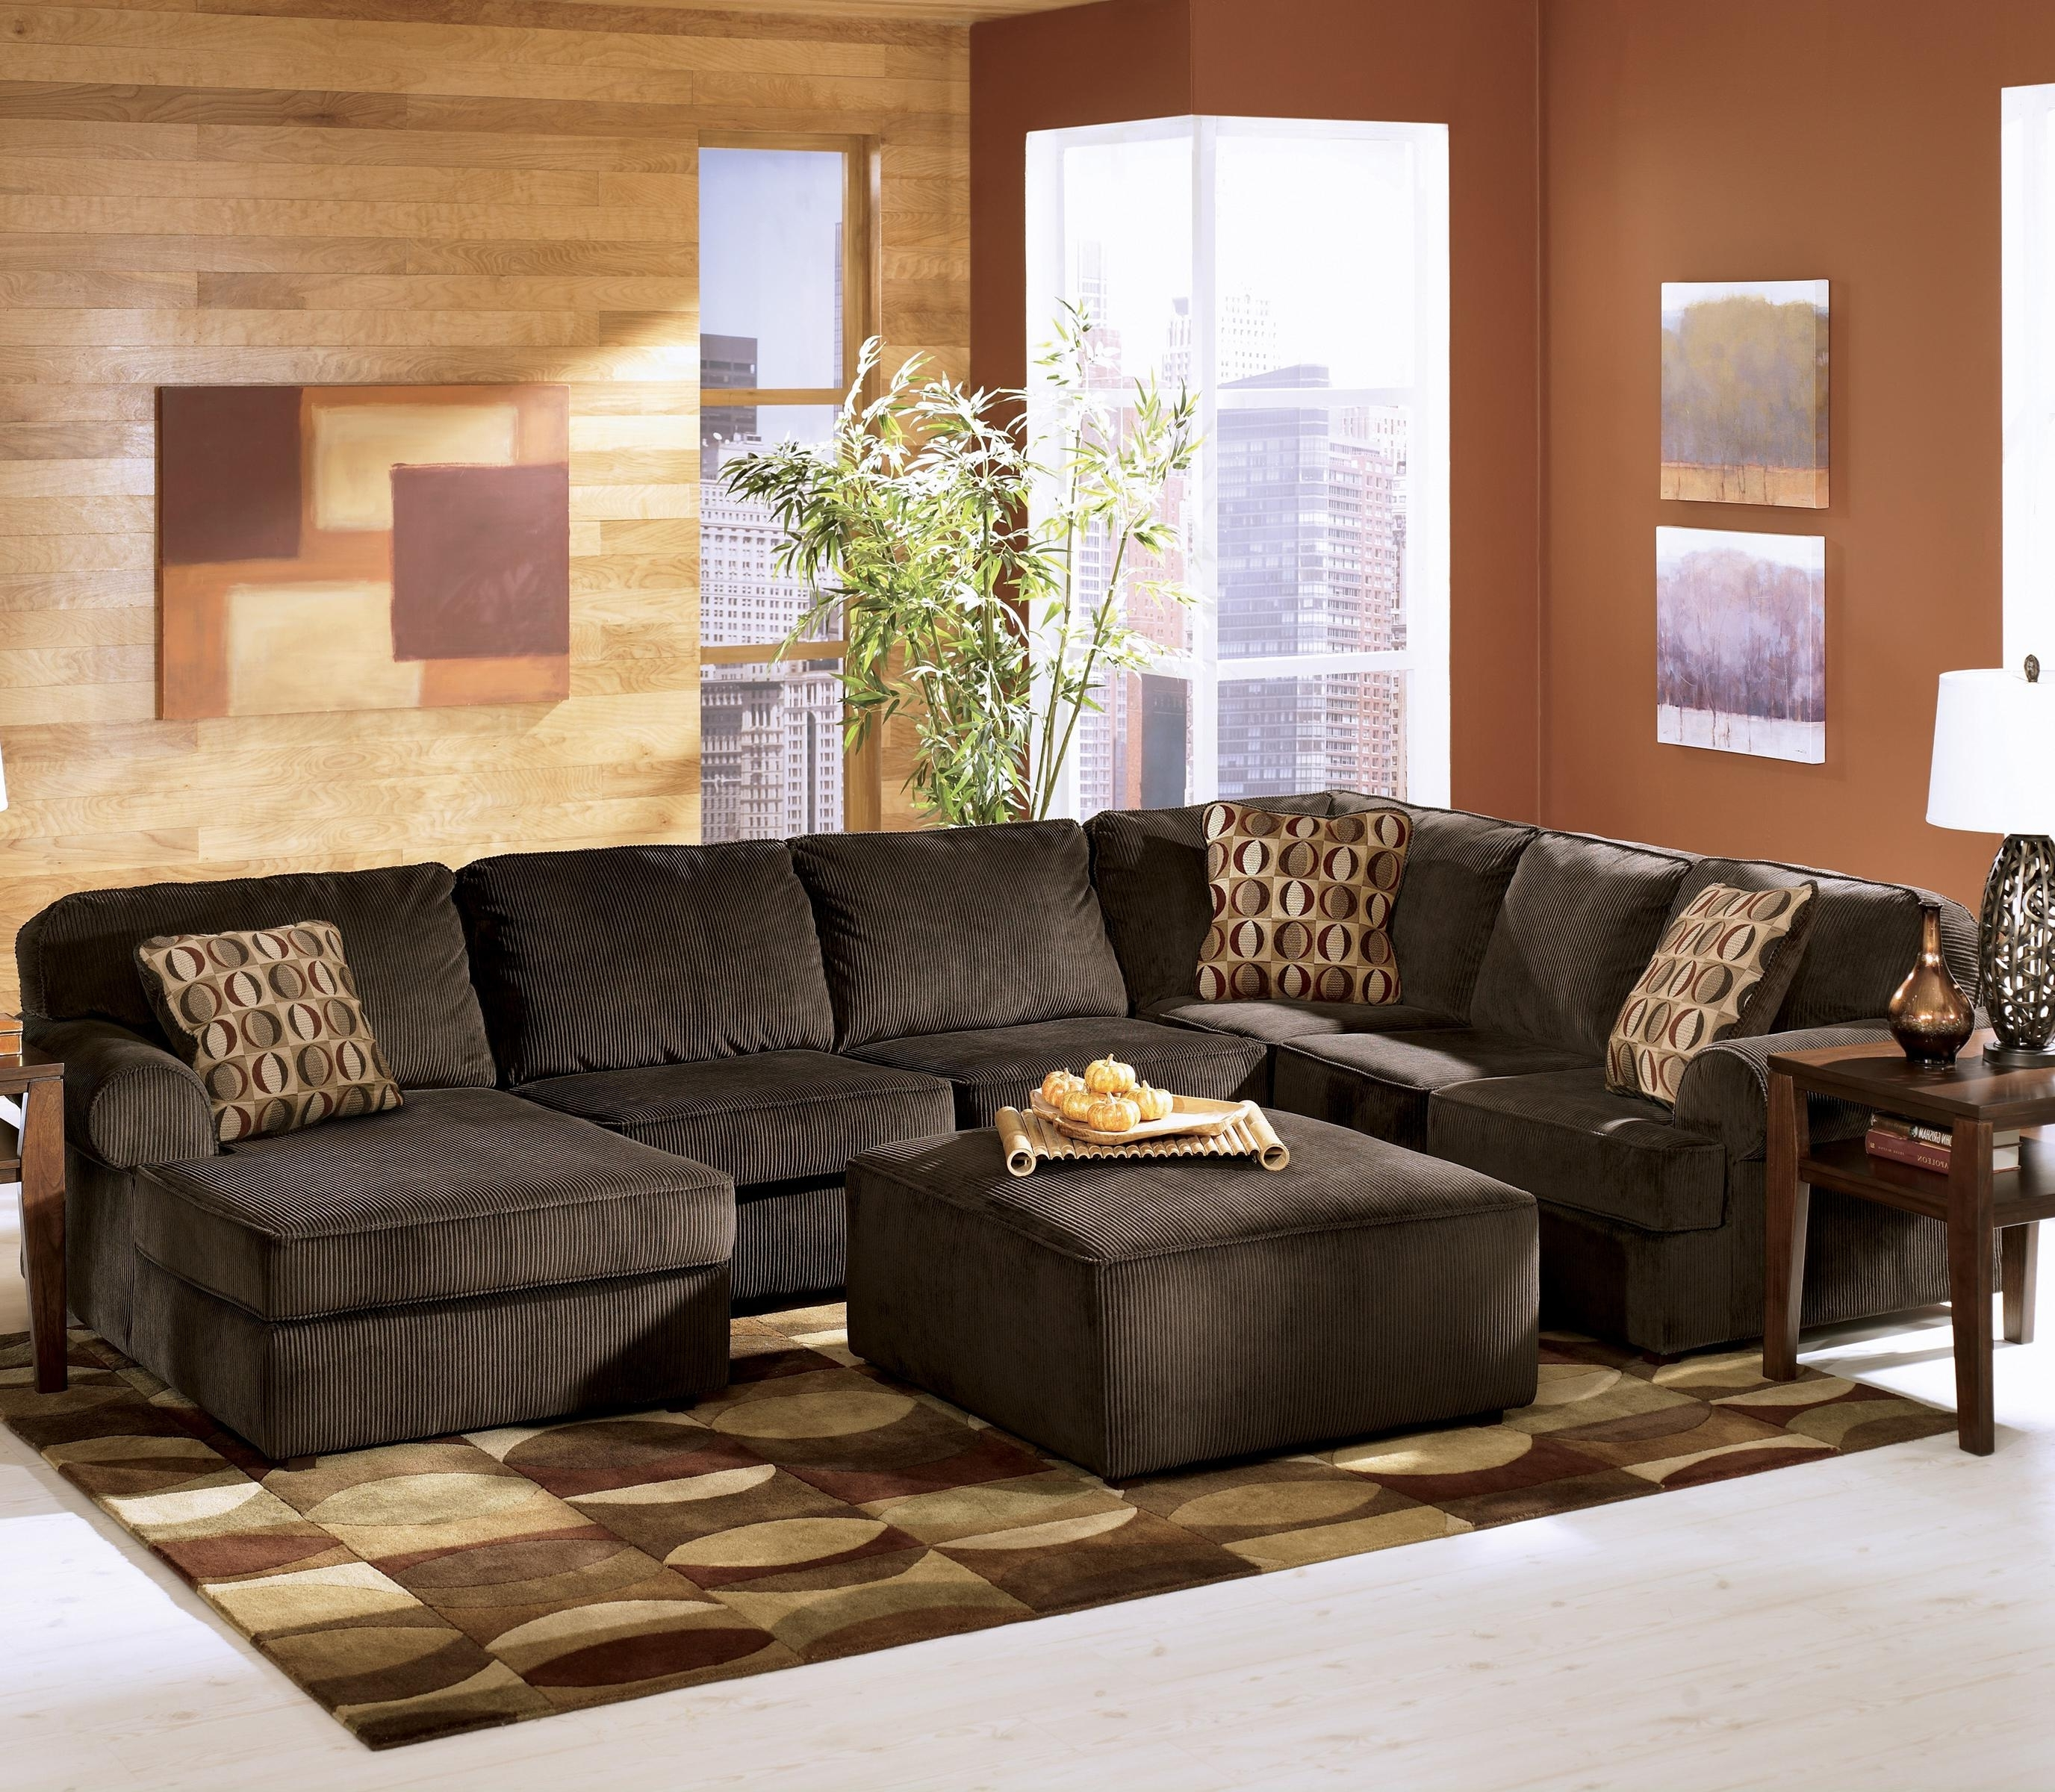 Most Recent Ashley Furniture Vista – Chocolate Casual 3 Piece Sectional With Pertaining To Ashley Furniture Sofa Chaises (View 10 of 15)